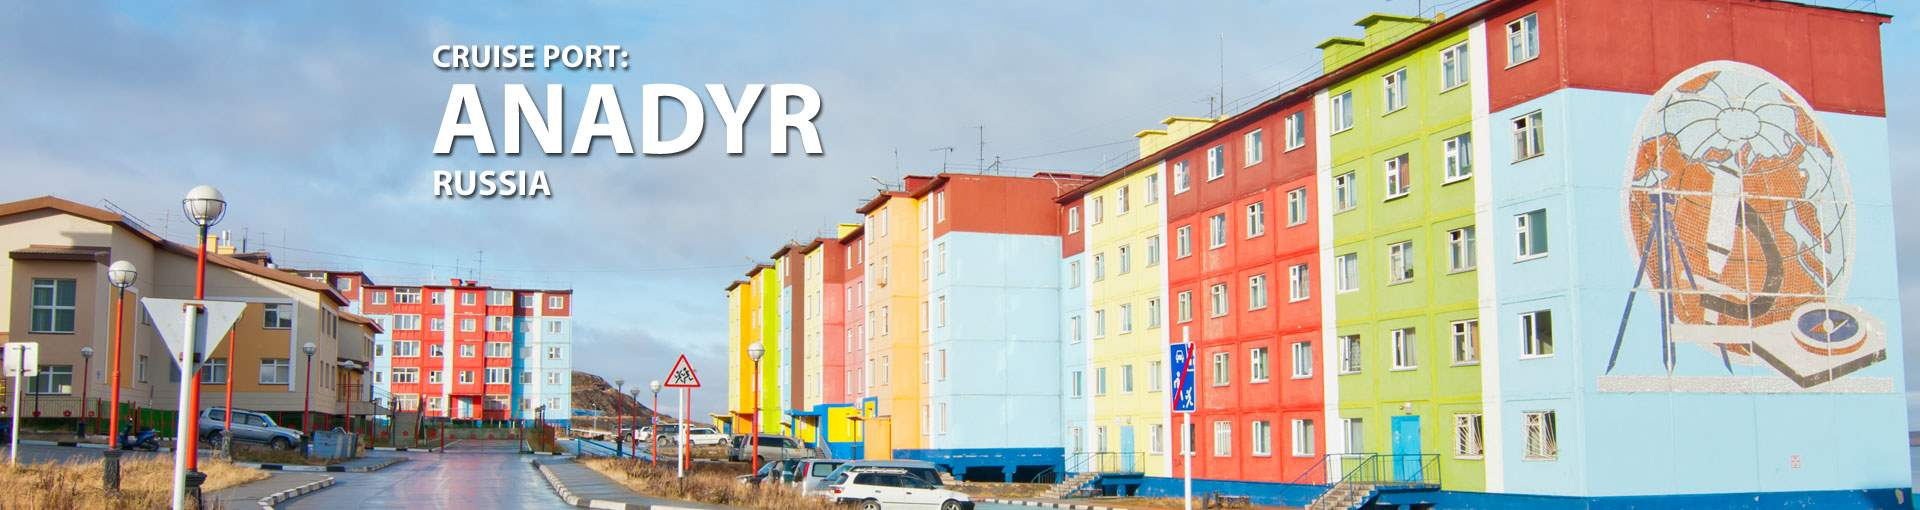 Cruises to Anadyr, Russia